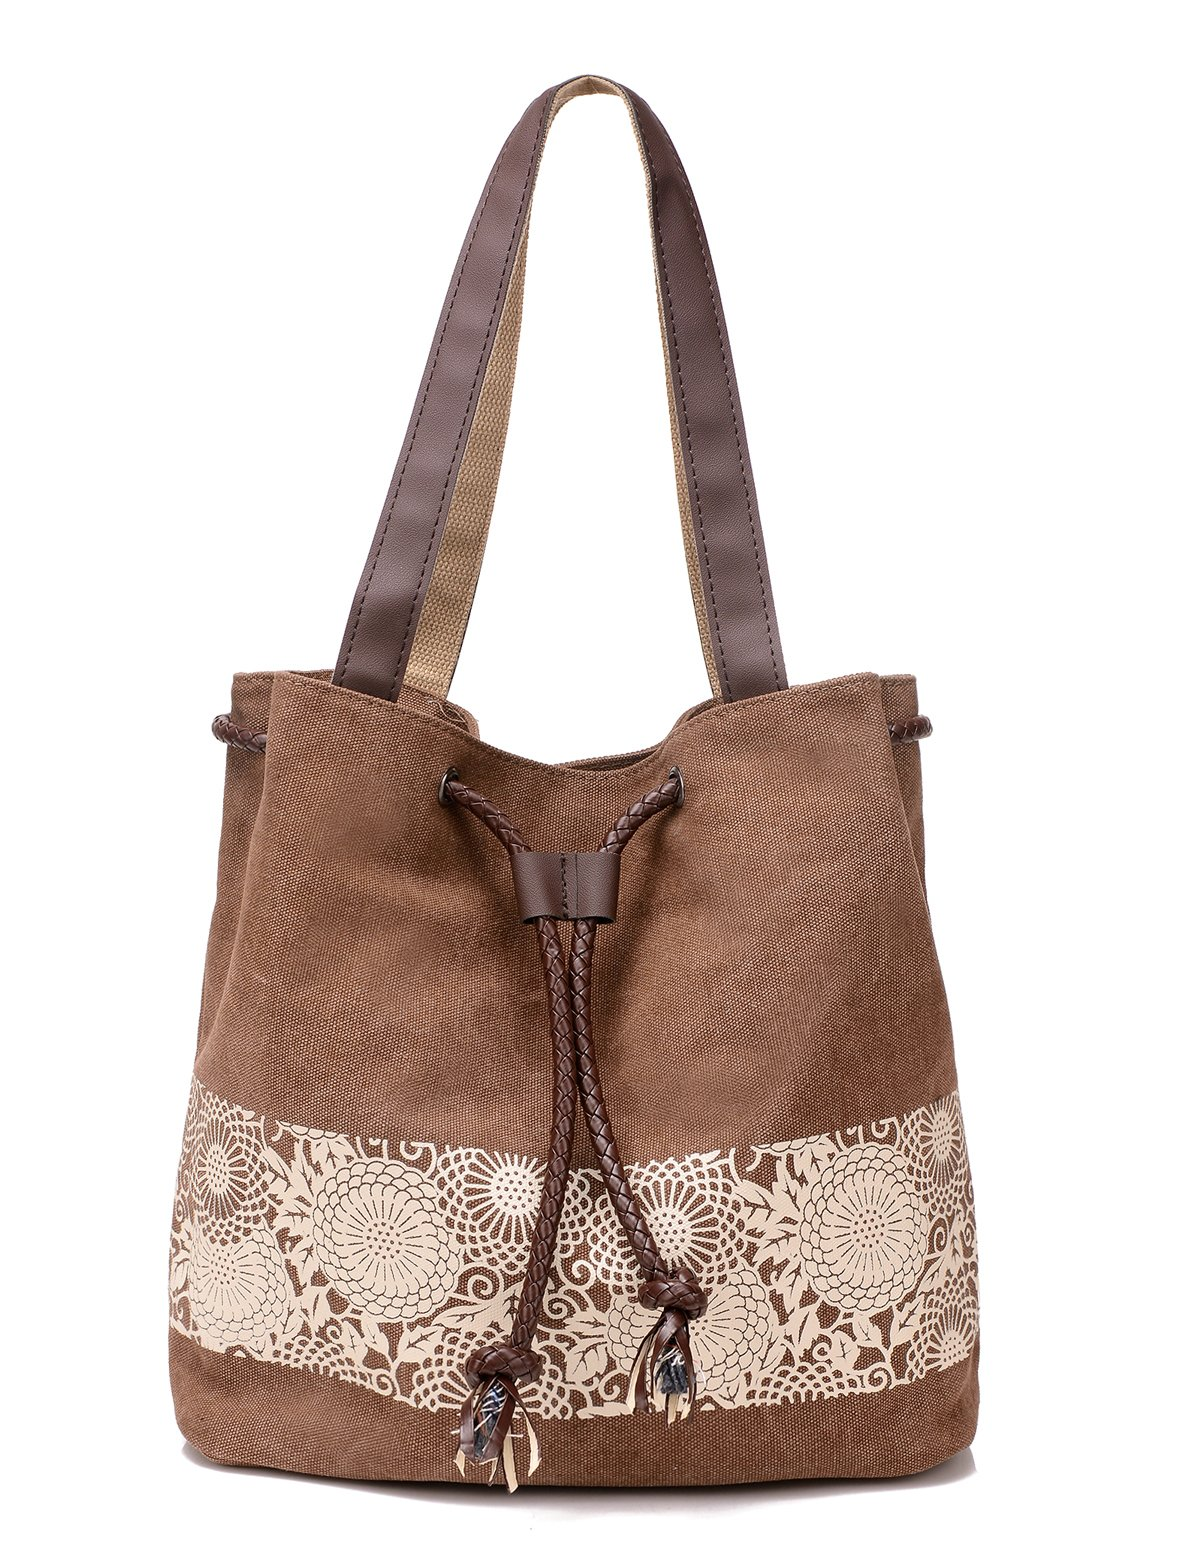 DOURR Women's Canvas Shoulder Bag Casual Tote Bag Handbag (brown)